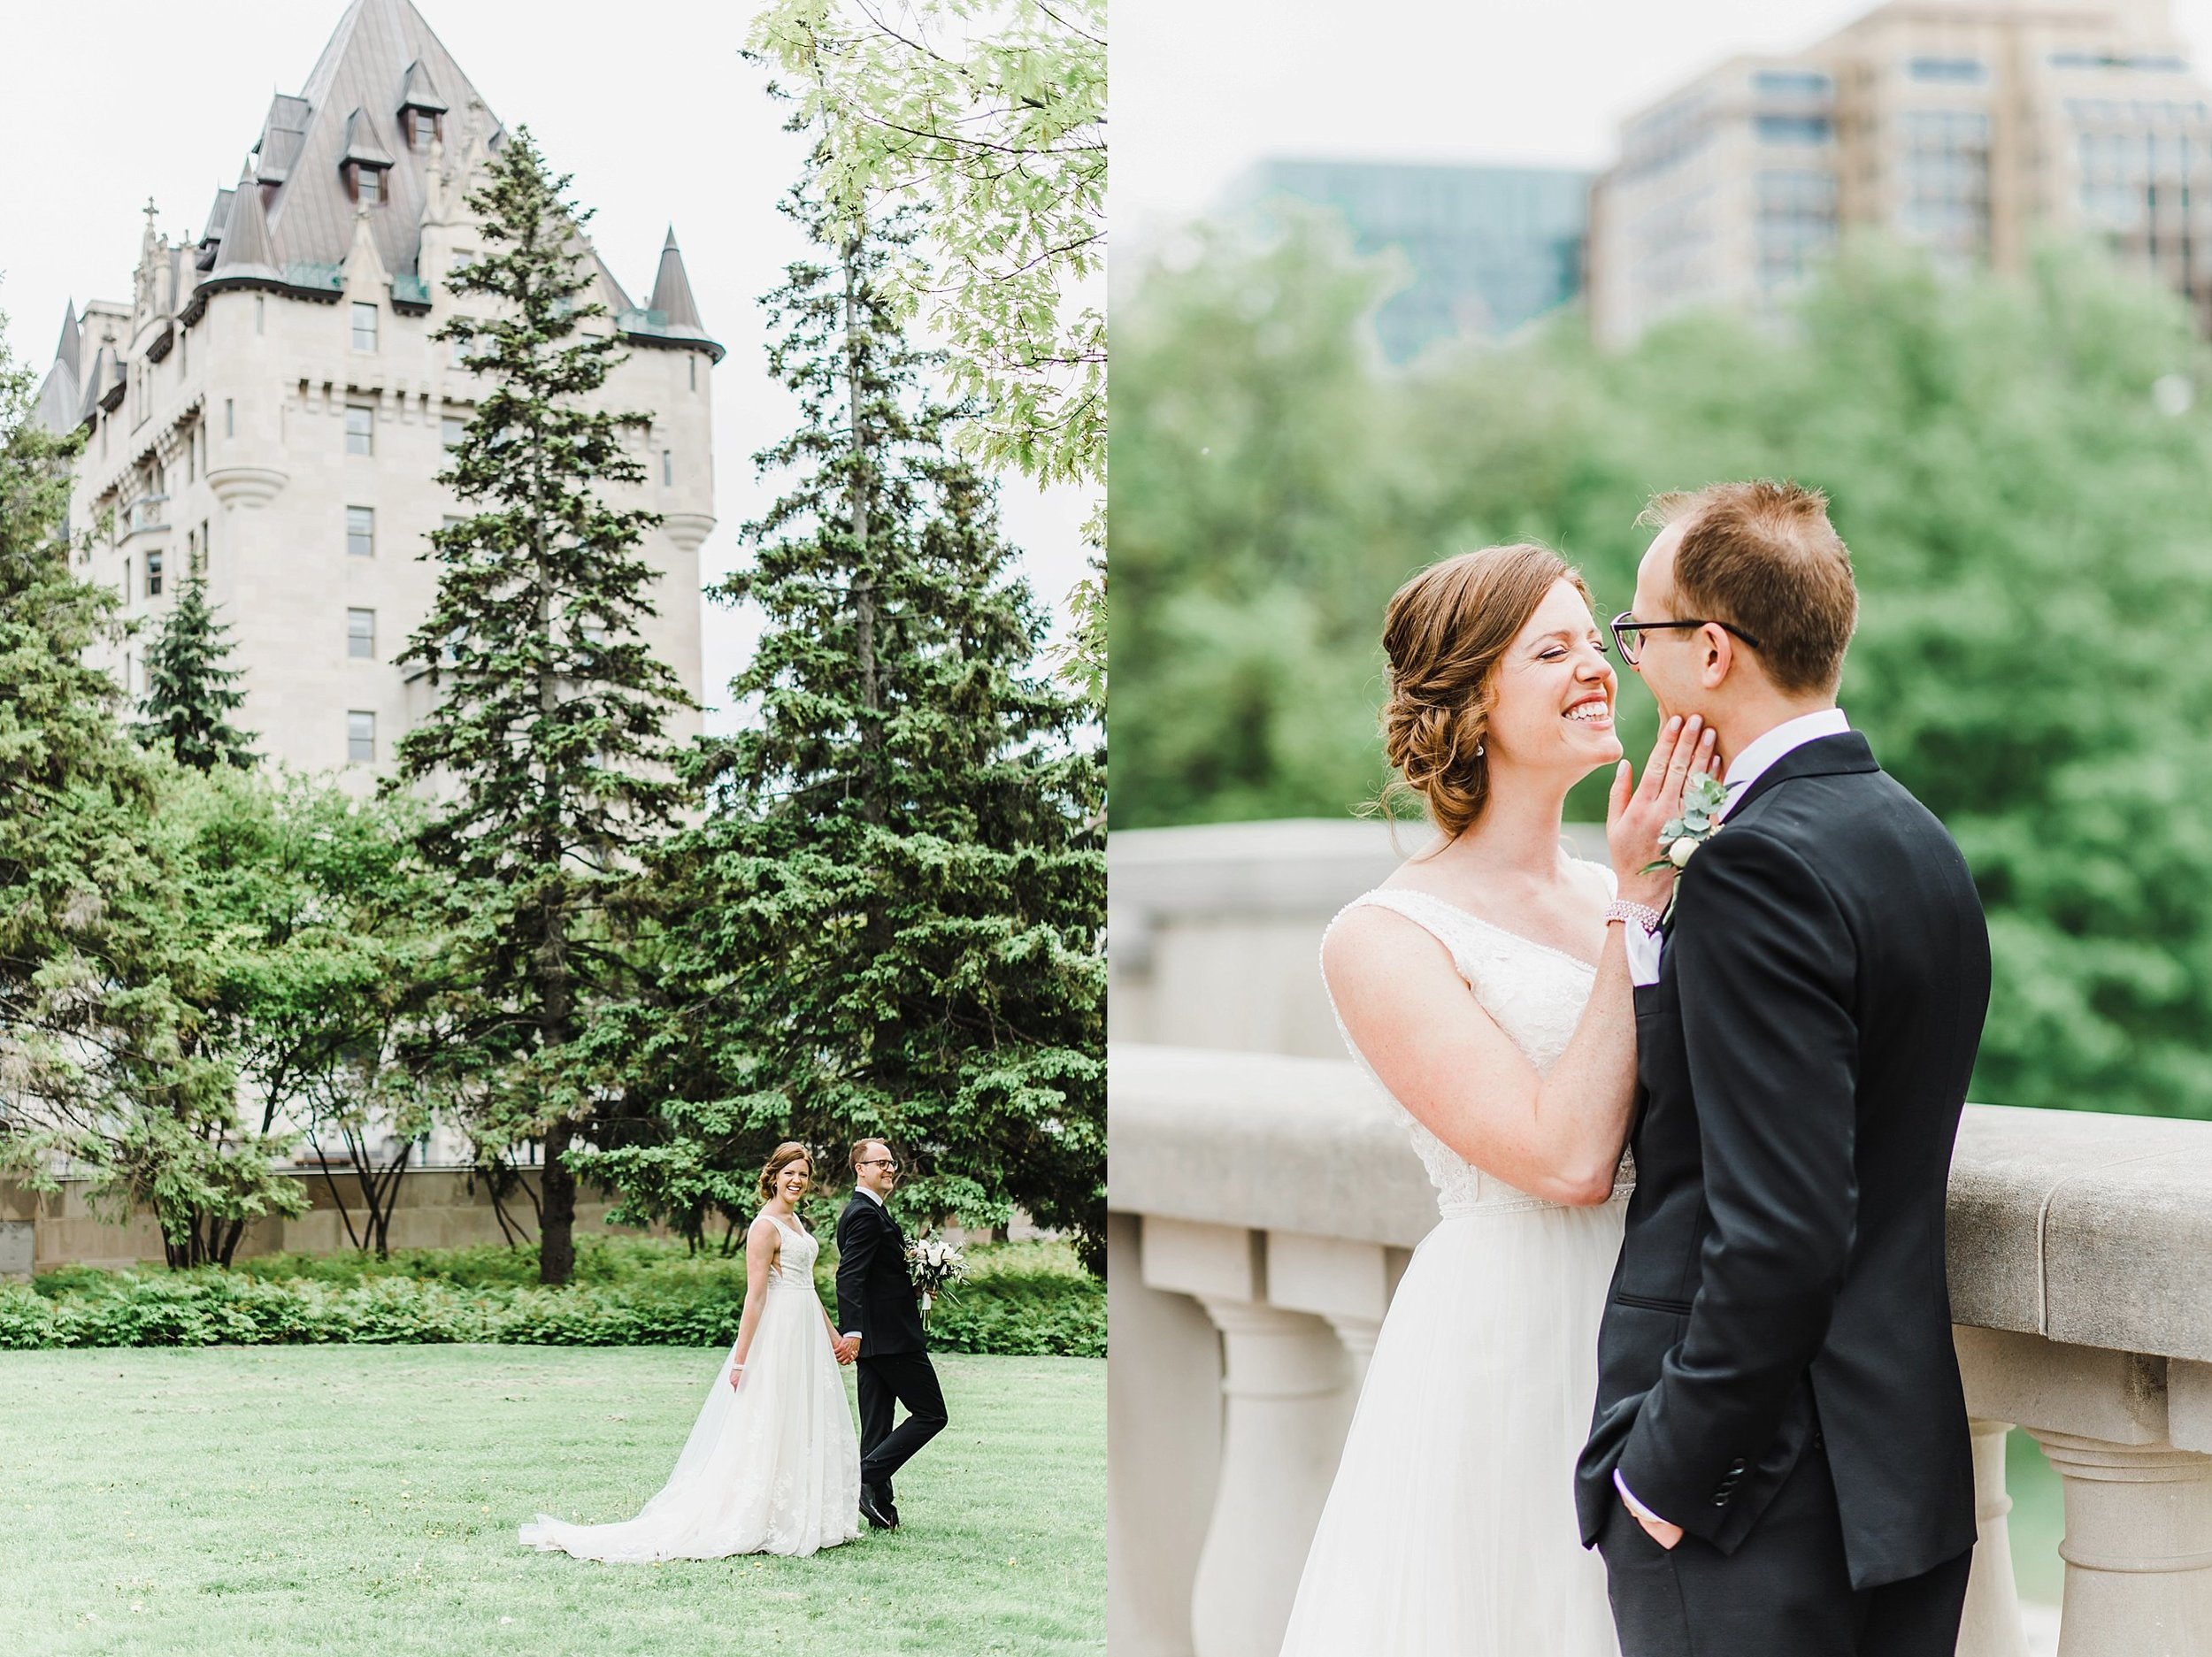 light airy indie fine art ottawa wedding photographer | Ali and Batoul Photography_0338.jpg